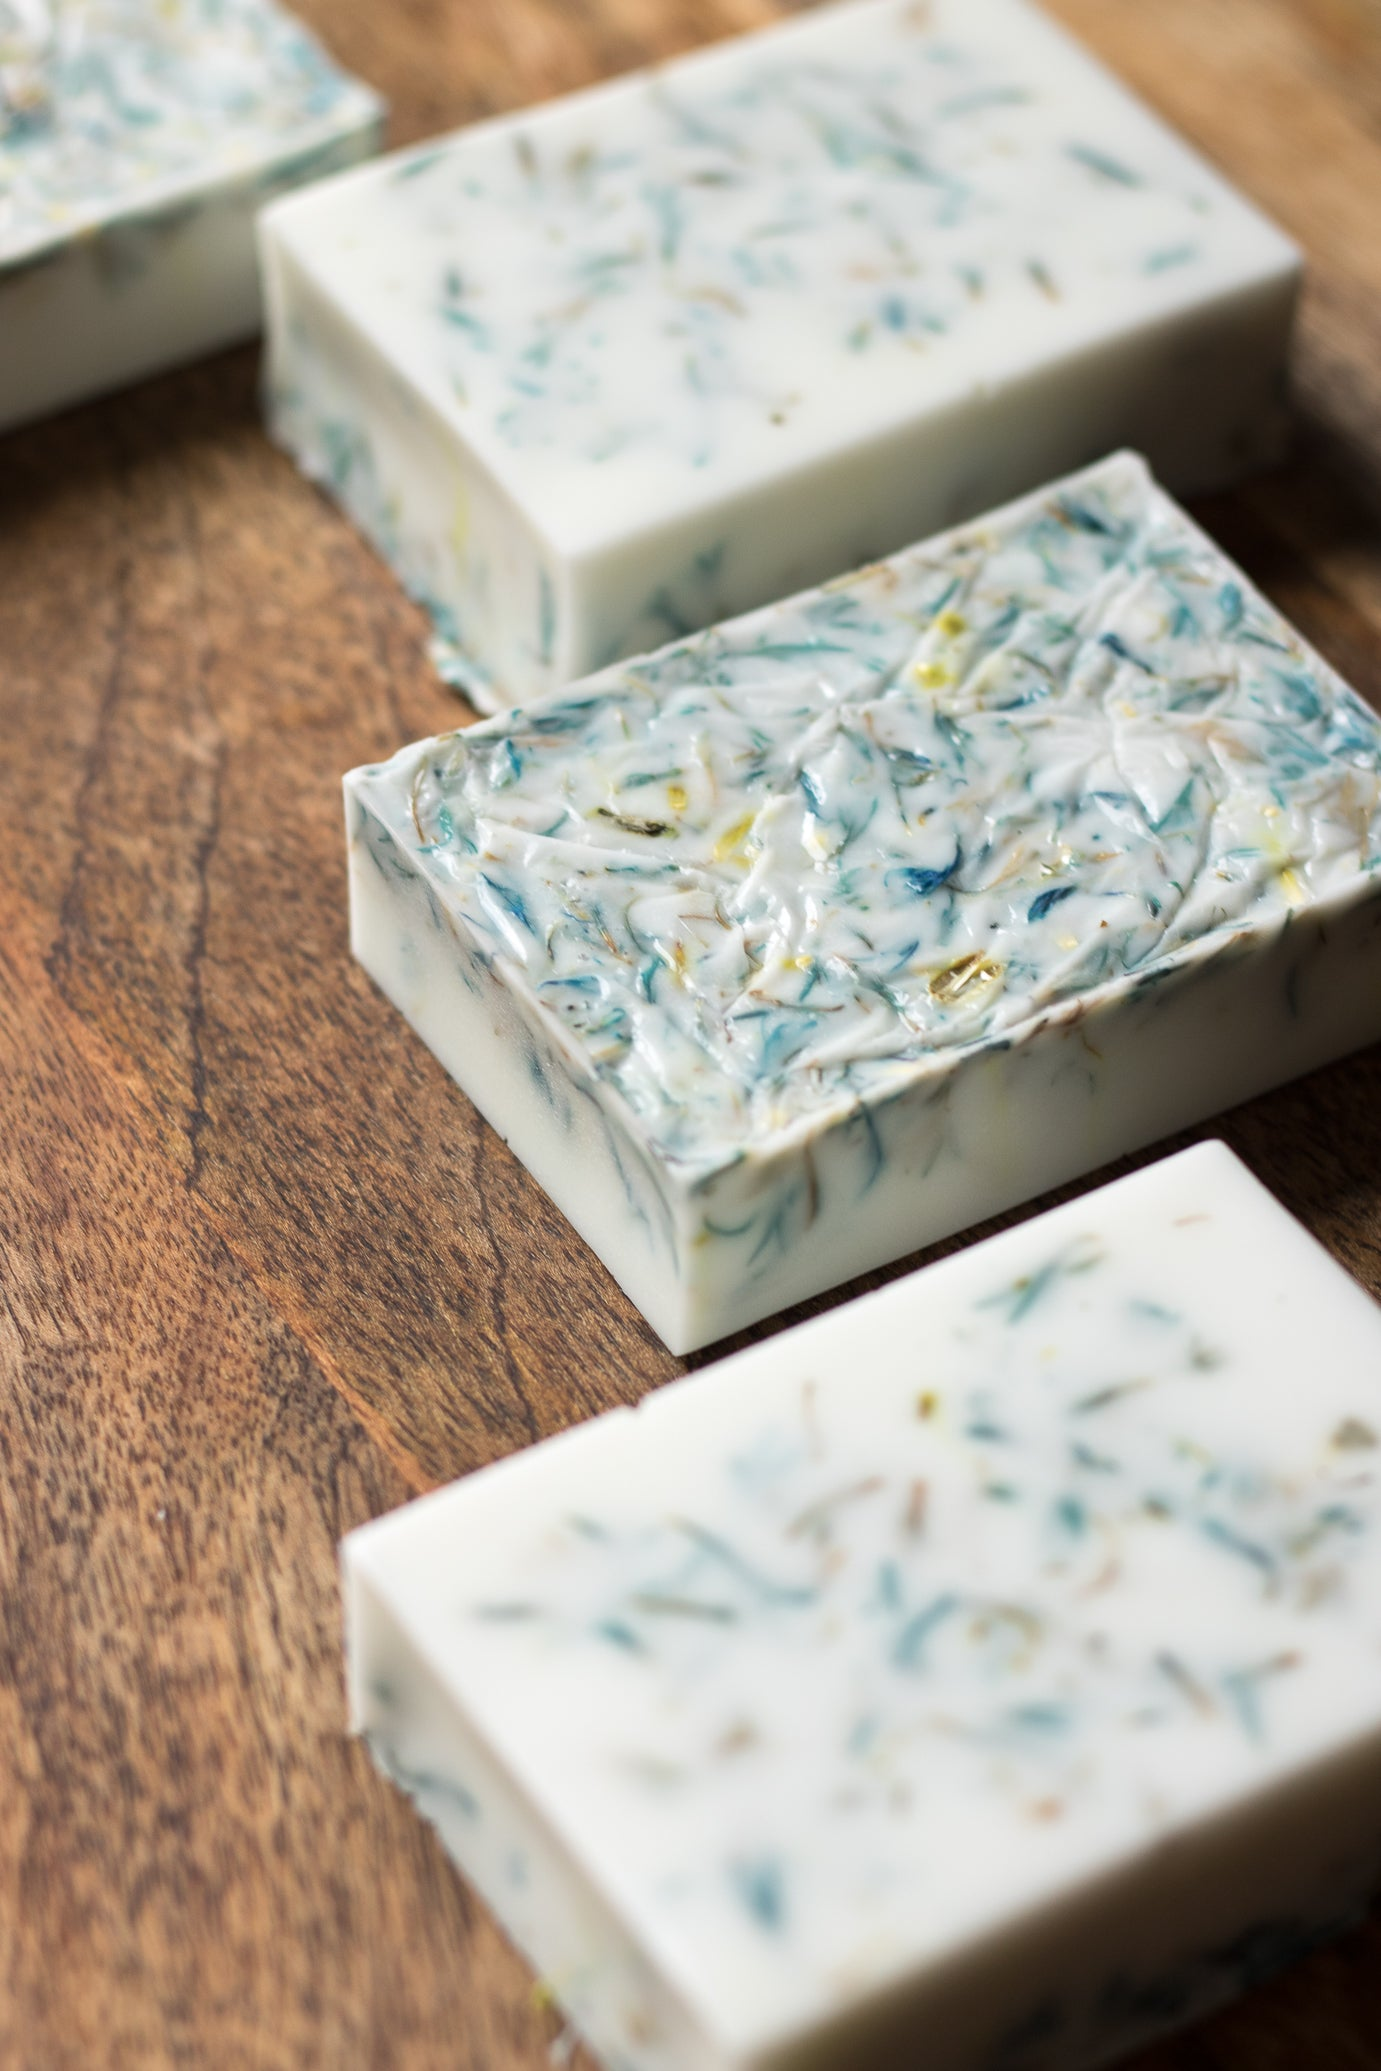 Cornflower Rose Shea Butter Soap